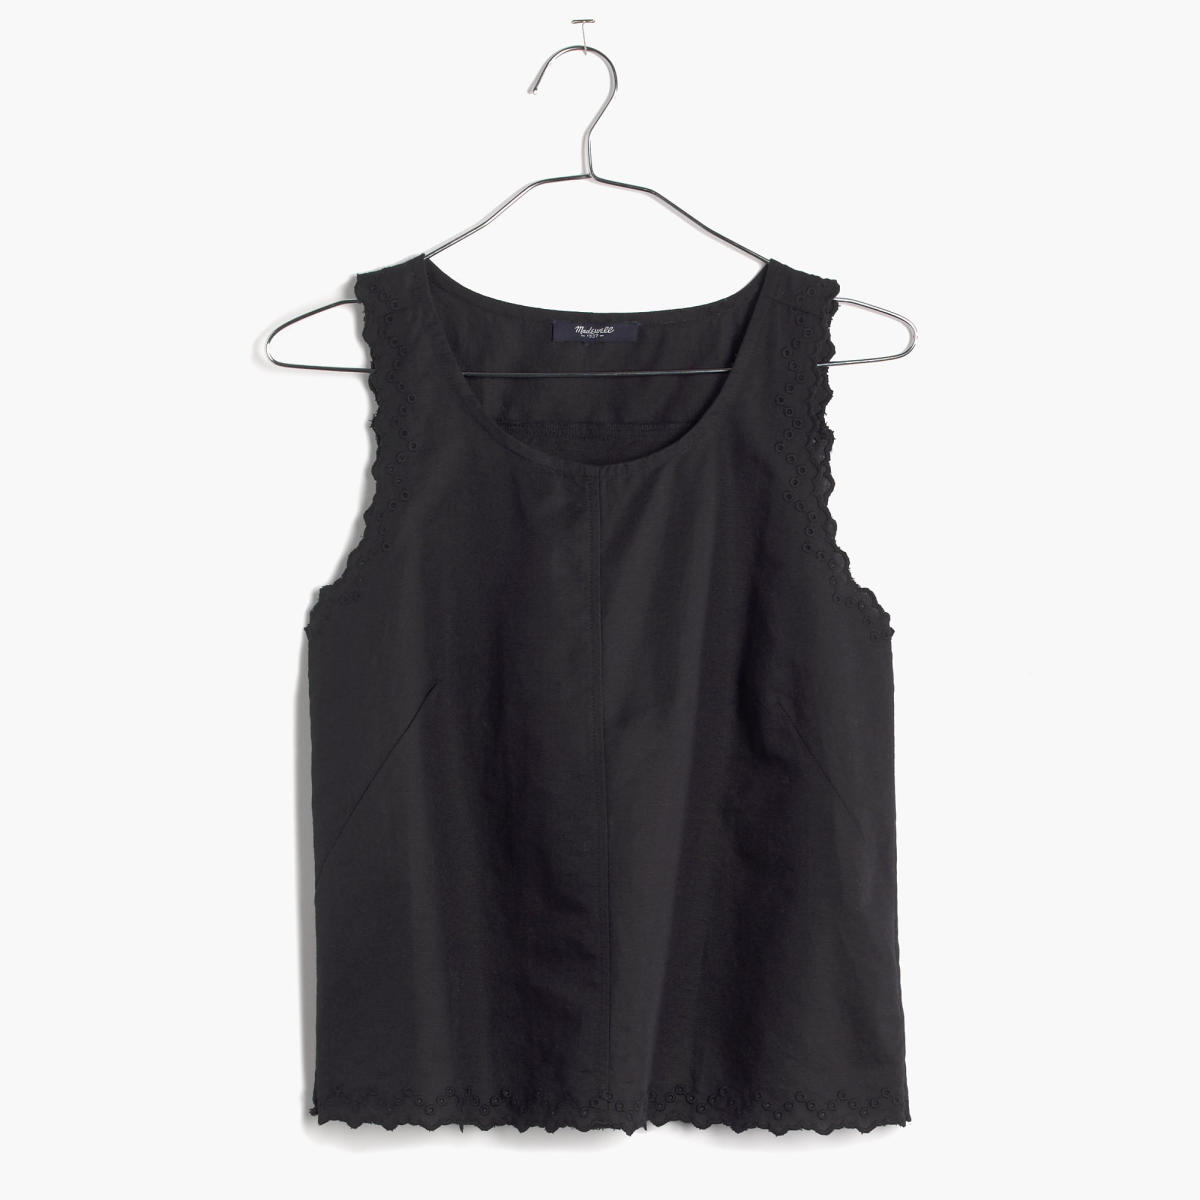 Madewell eyelet crop top, now $48.75, available at Madewell.